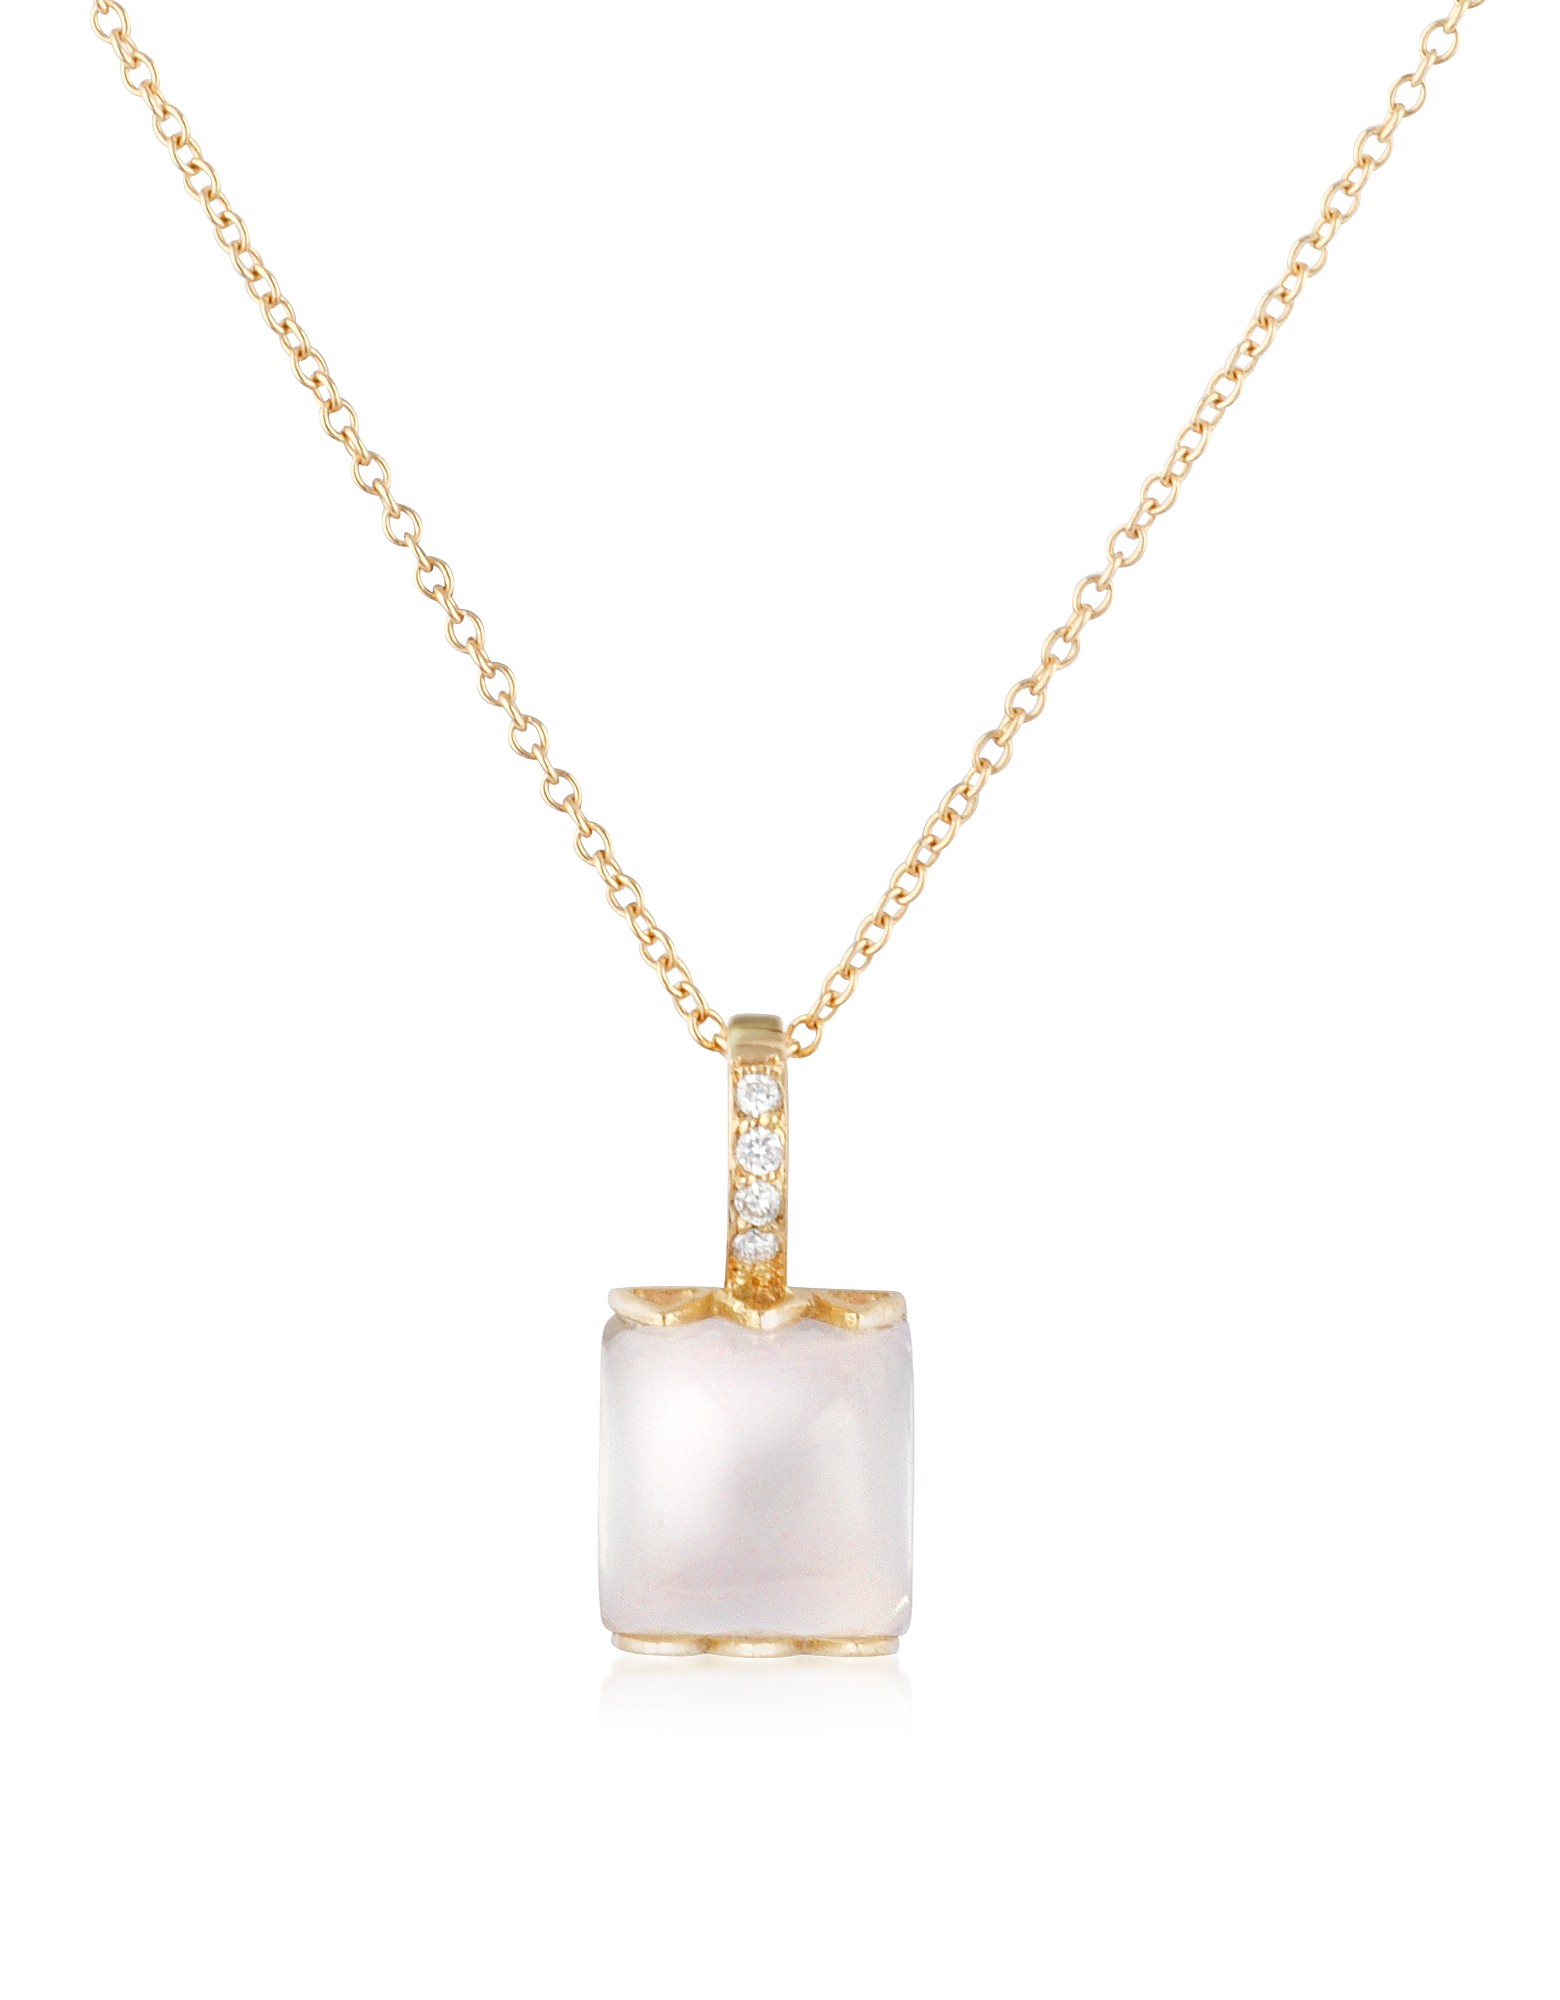 Mia & Beverly Necklaces, Rose Quartz and Diamond 18K Gold Charm Necklace